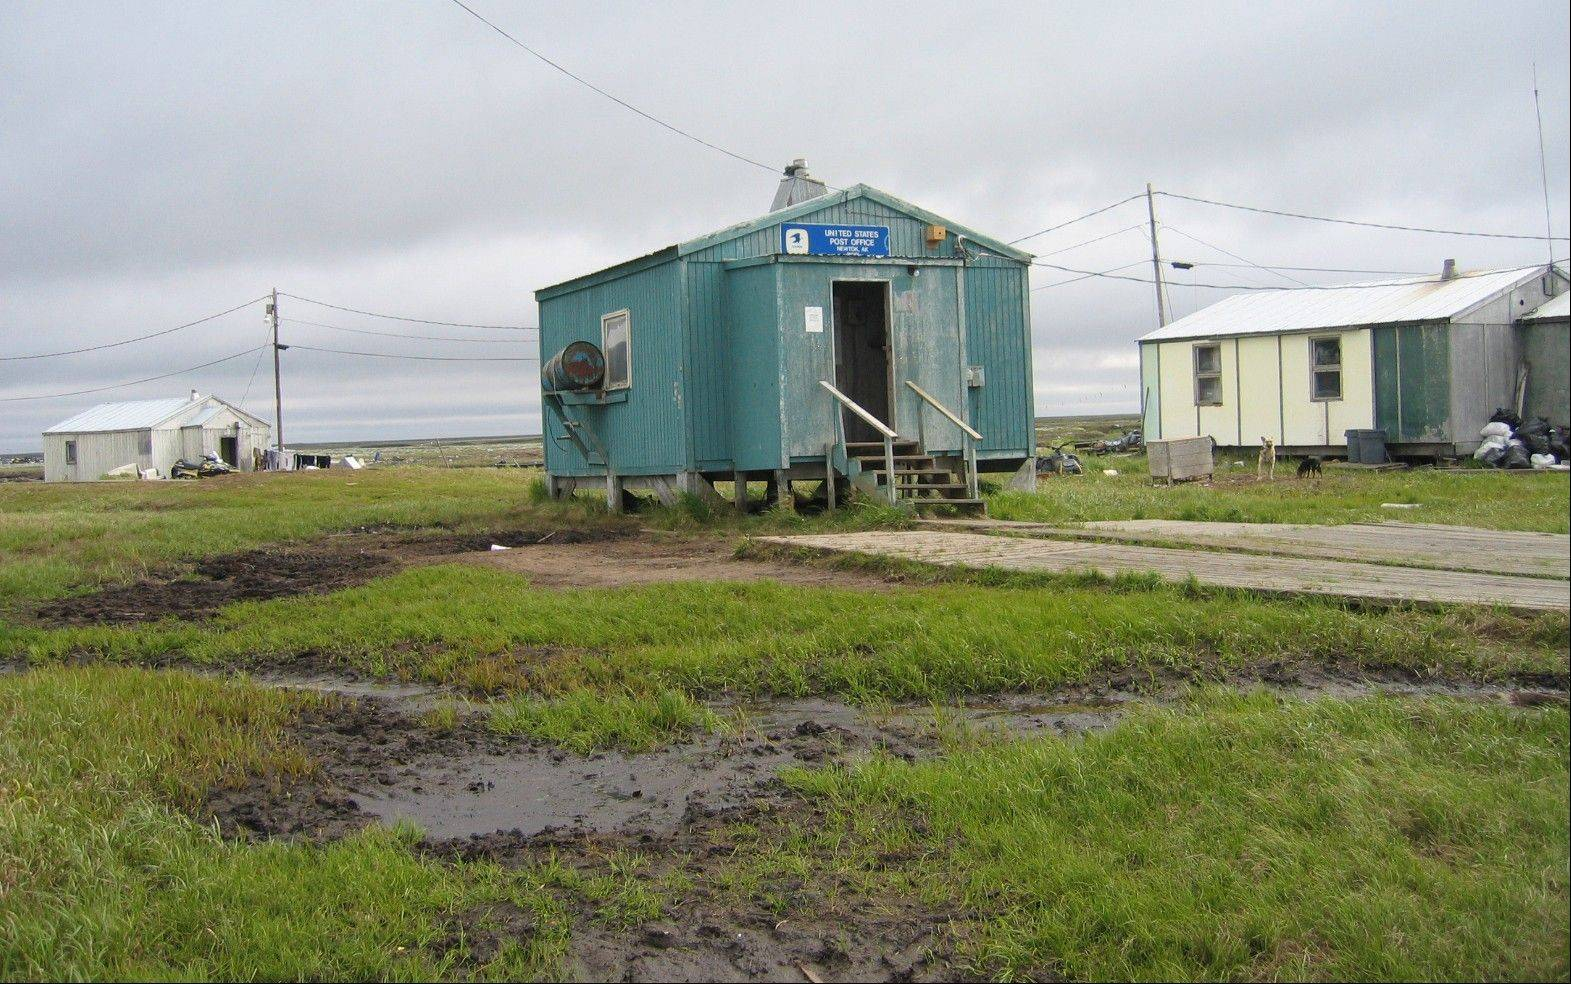 The flood-prone village of Newtok near Alaska�s storm-battered coast is running out of time as coastal erosion creeps ever closer to the Yup�ik Eskimo community.